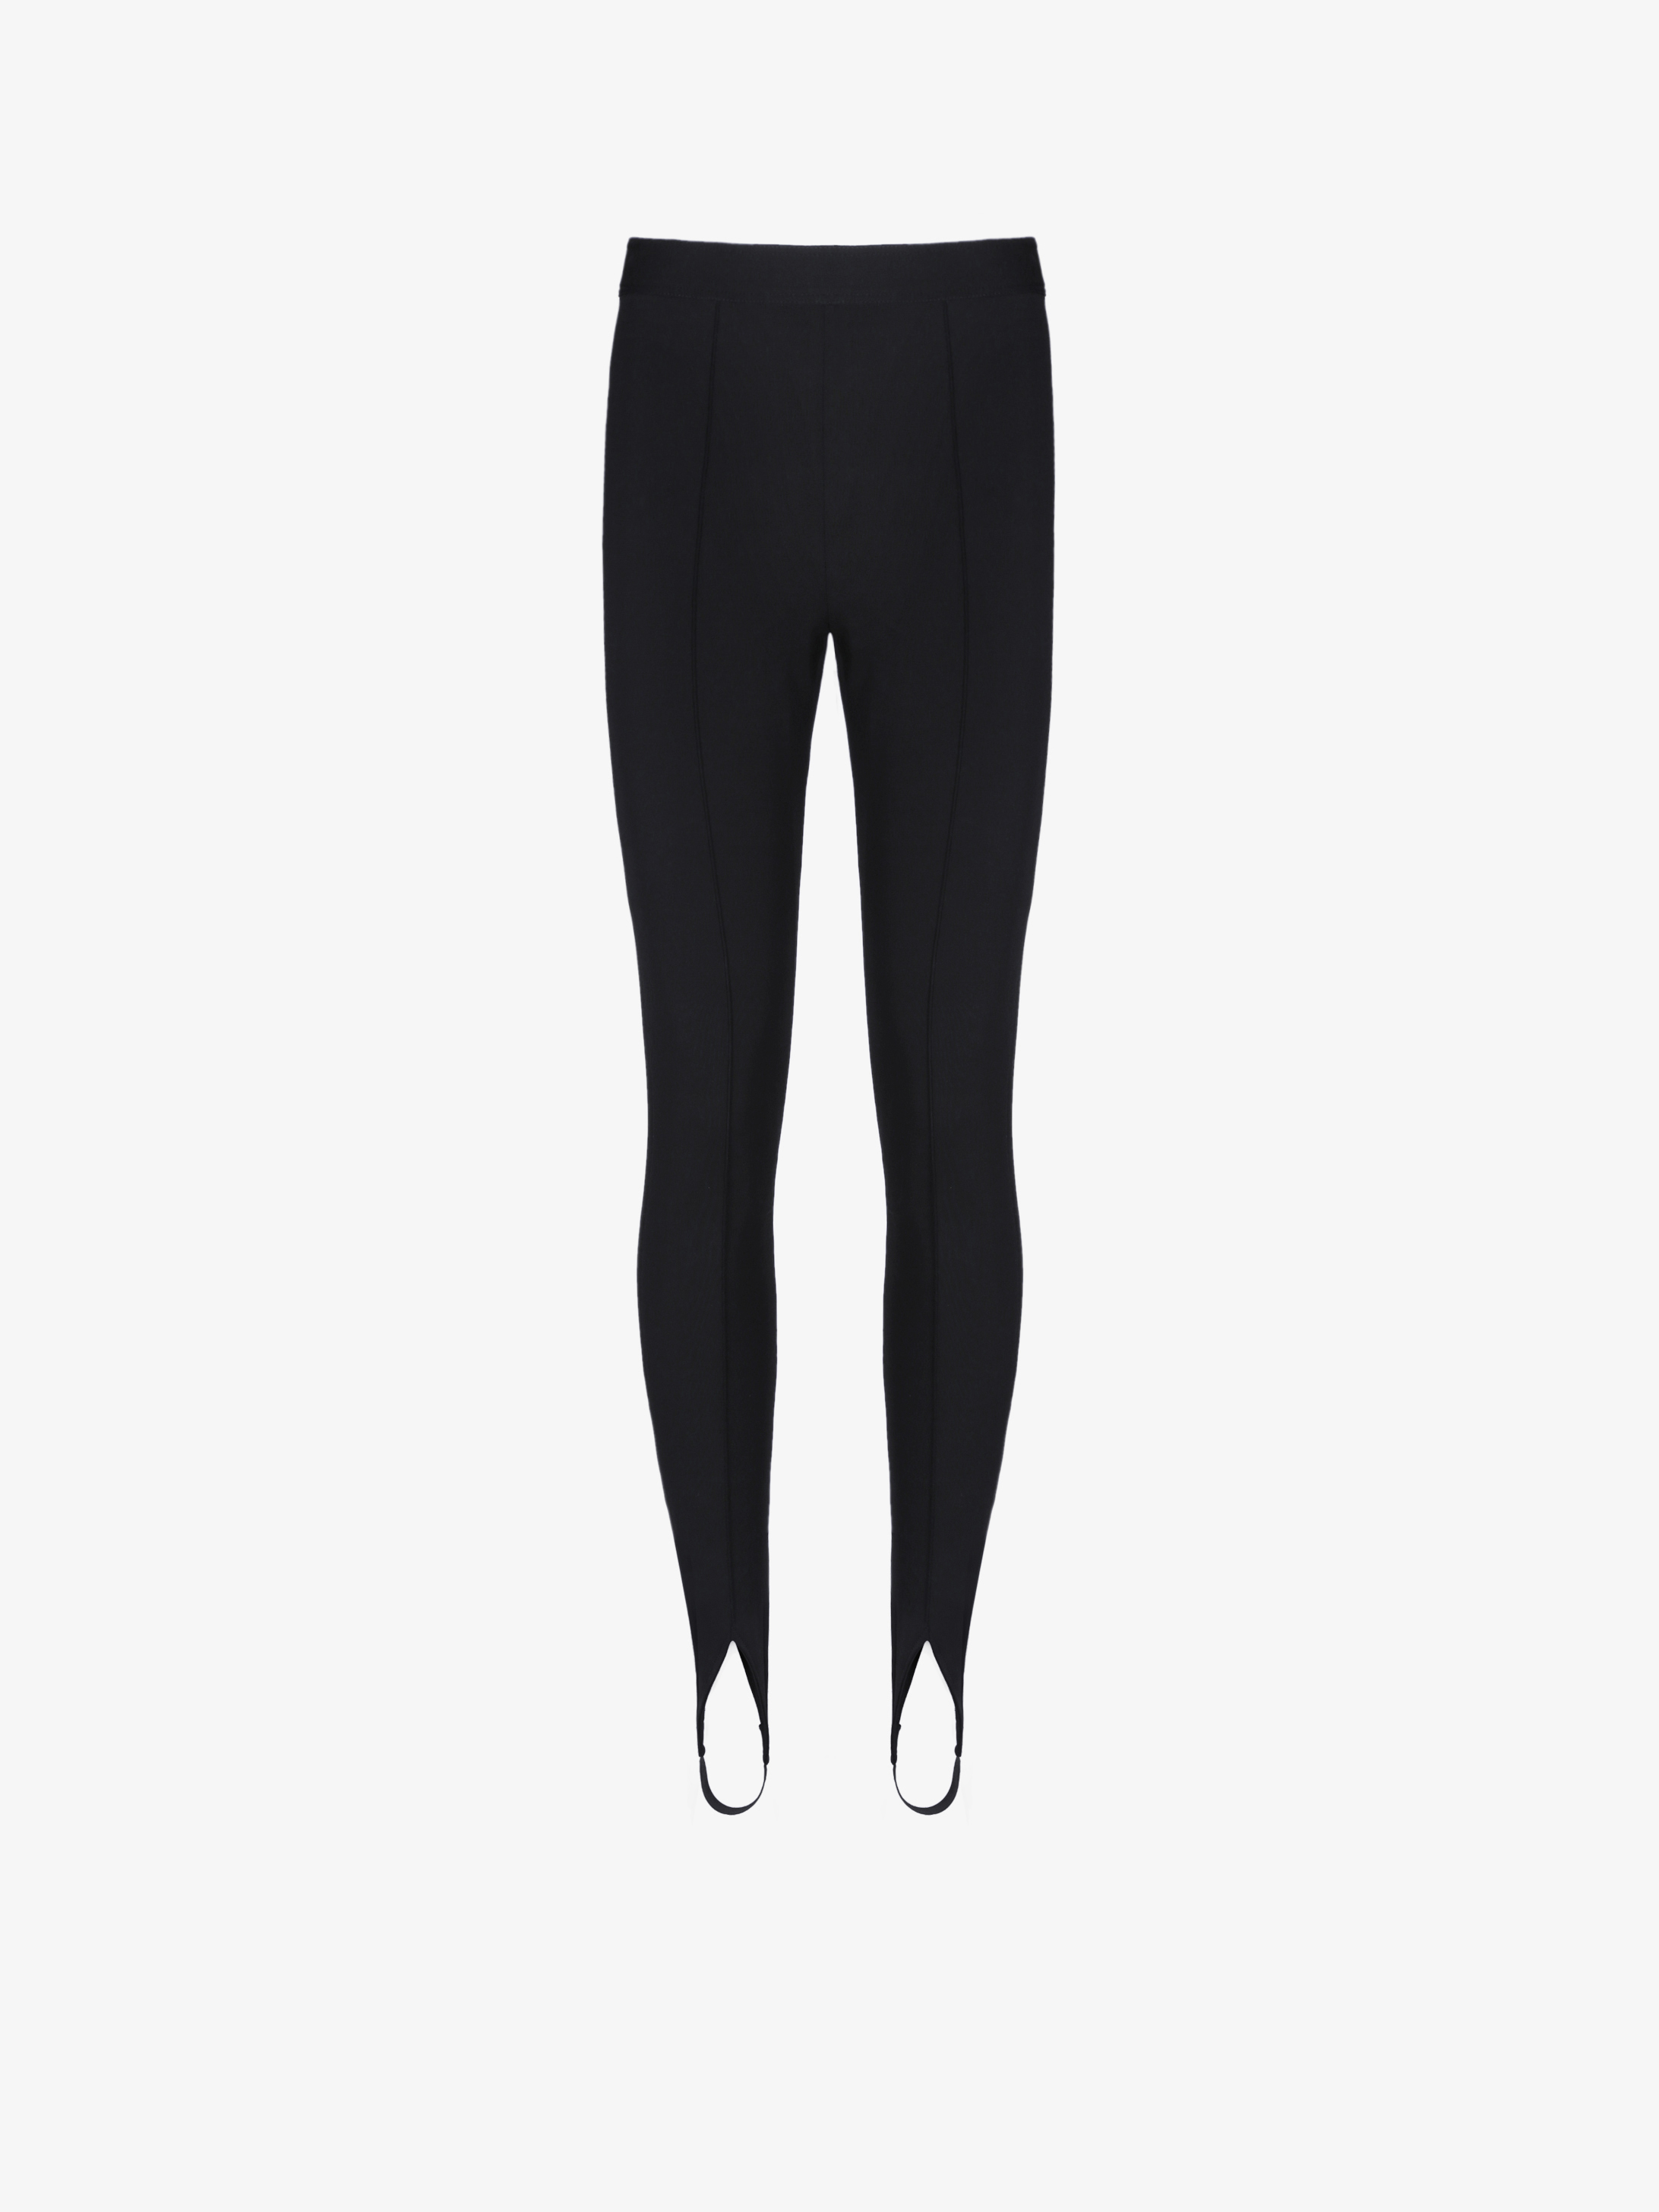 Stirrup leggings in jersey